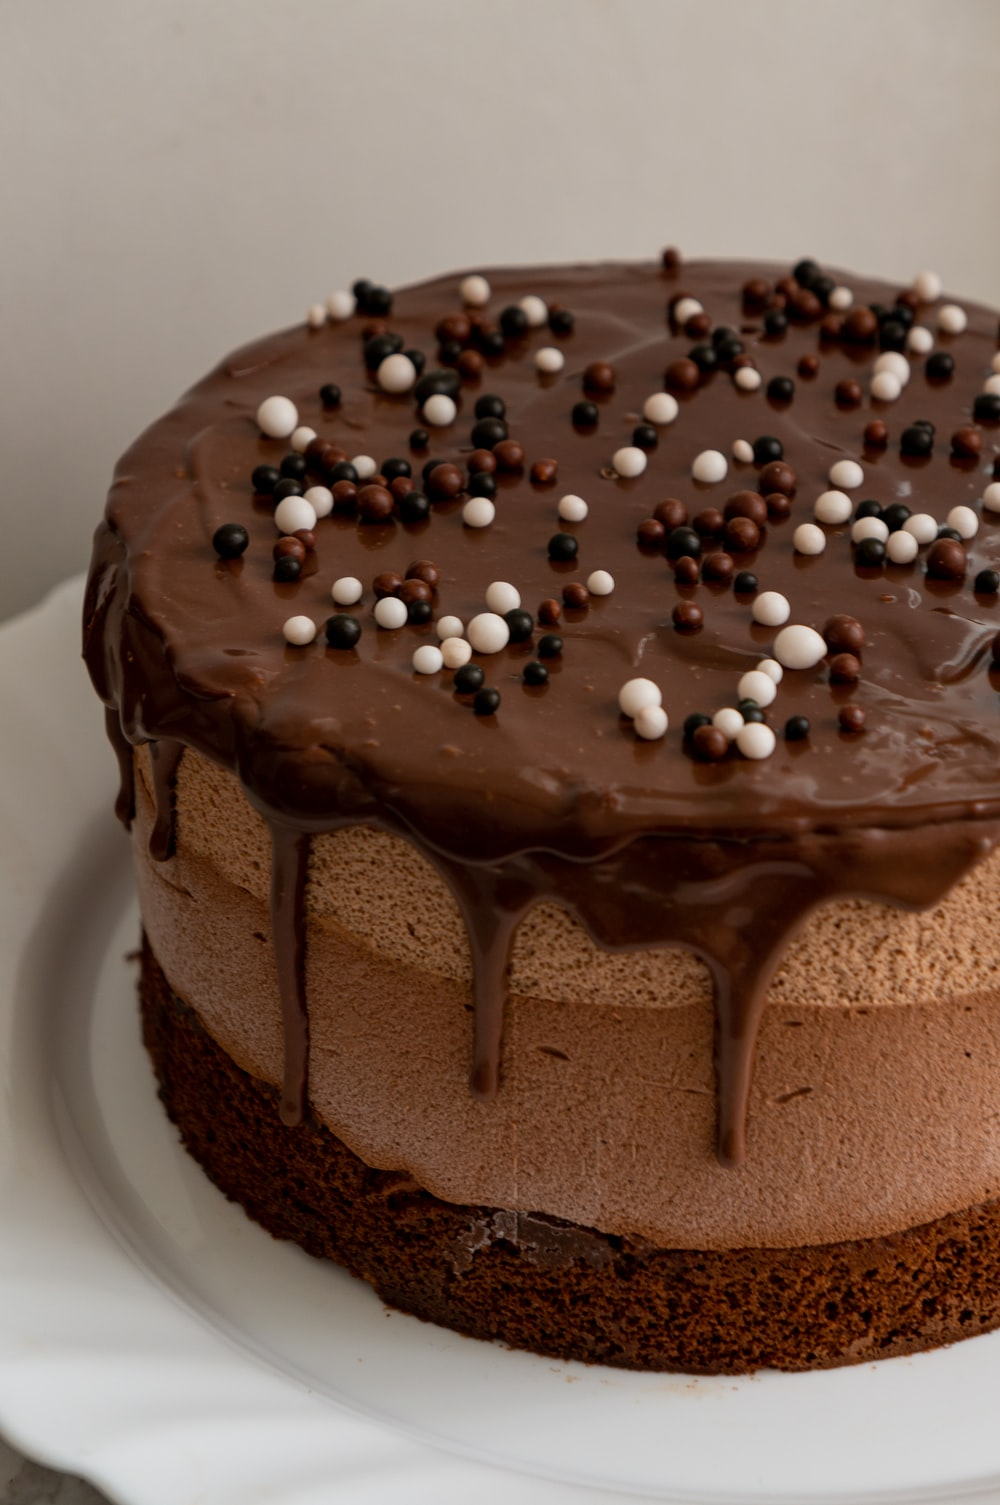 chocolate cake with white icing on top